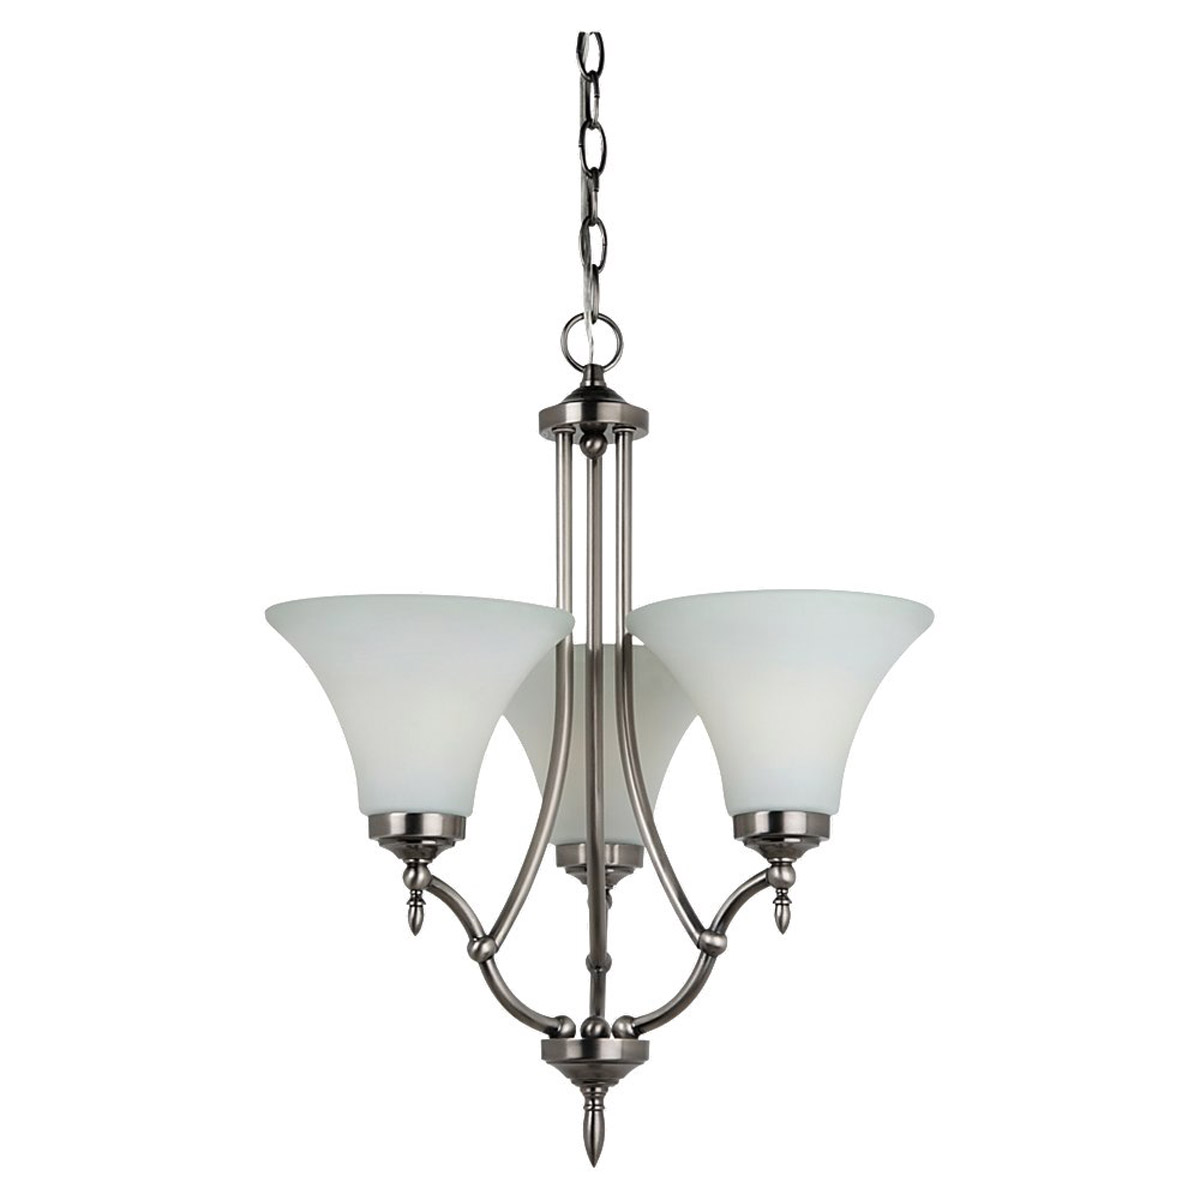 Sea Gull Lighting Montreal 3 Light Chandelier in Antique Brushed Nickel 31180-965 photo